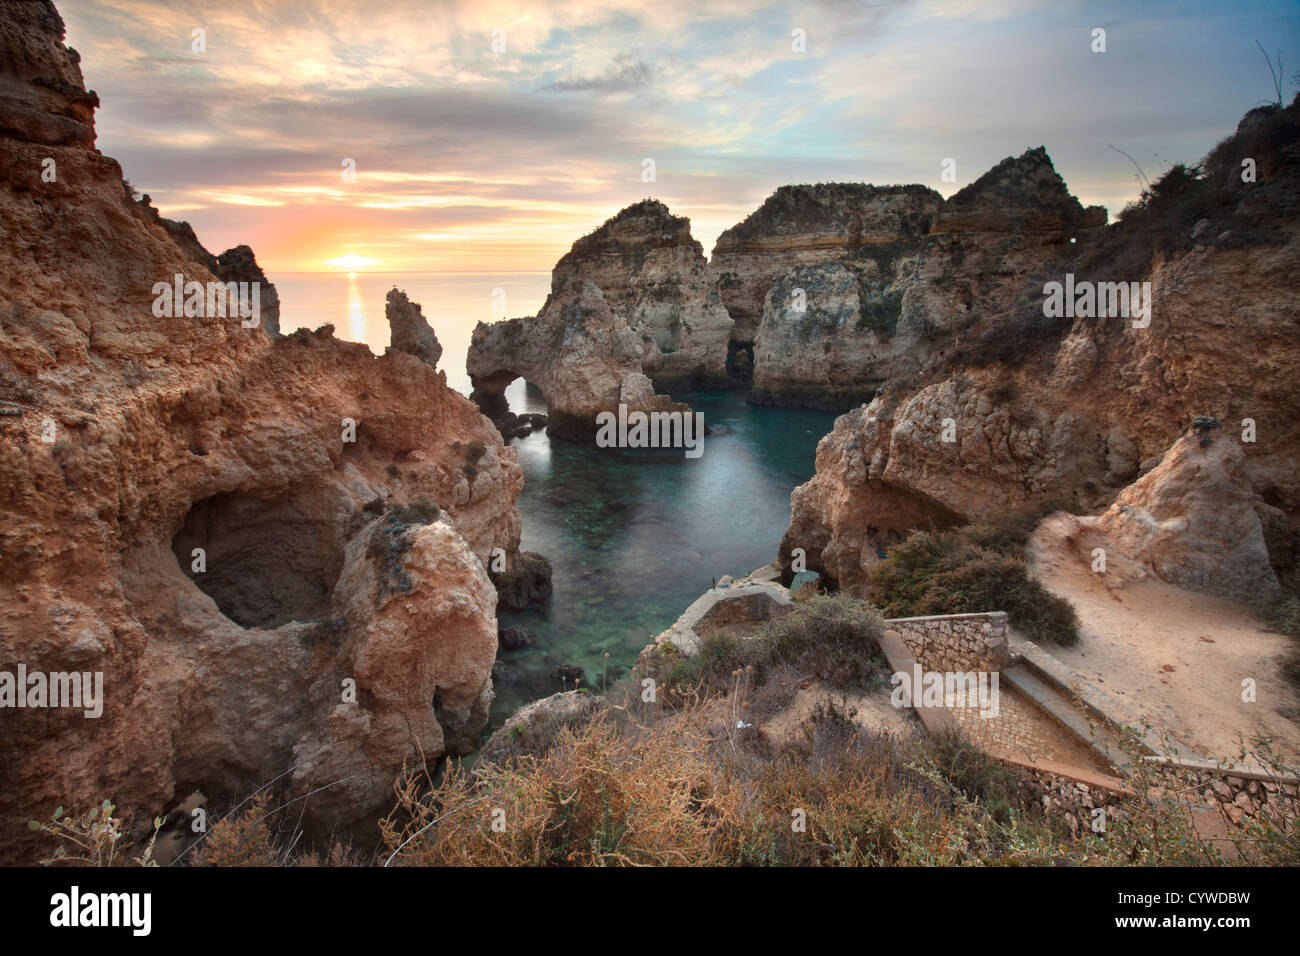 Ponta da Piedade sea stacks and arches captured at sunrise, Portugal. - Stock Image